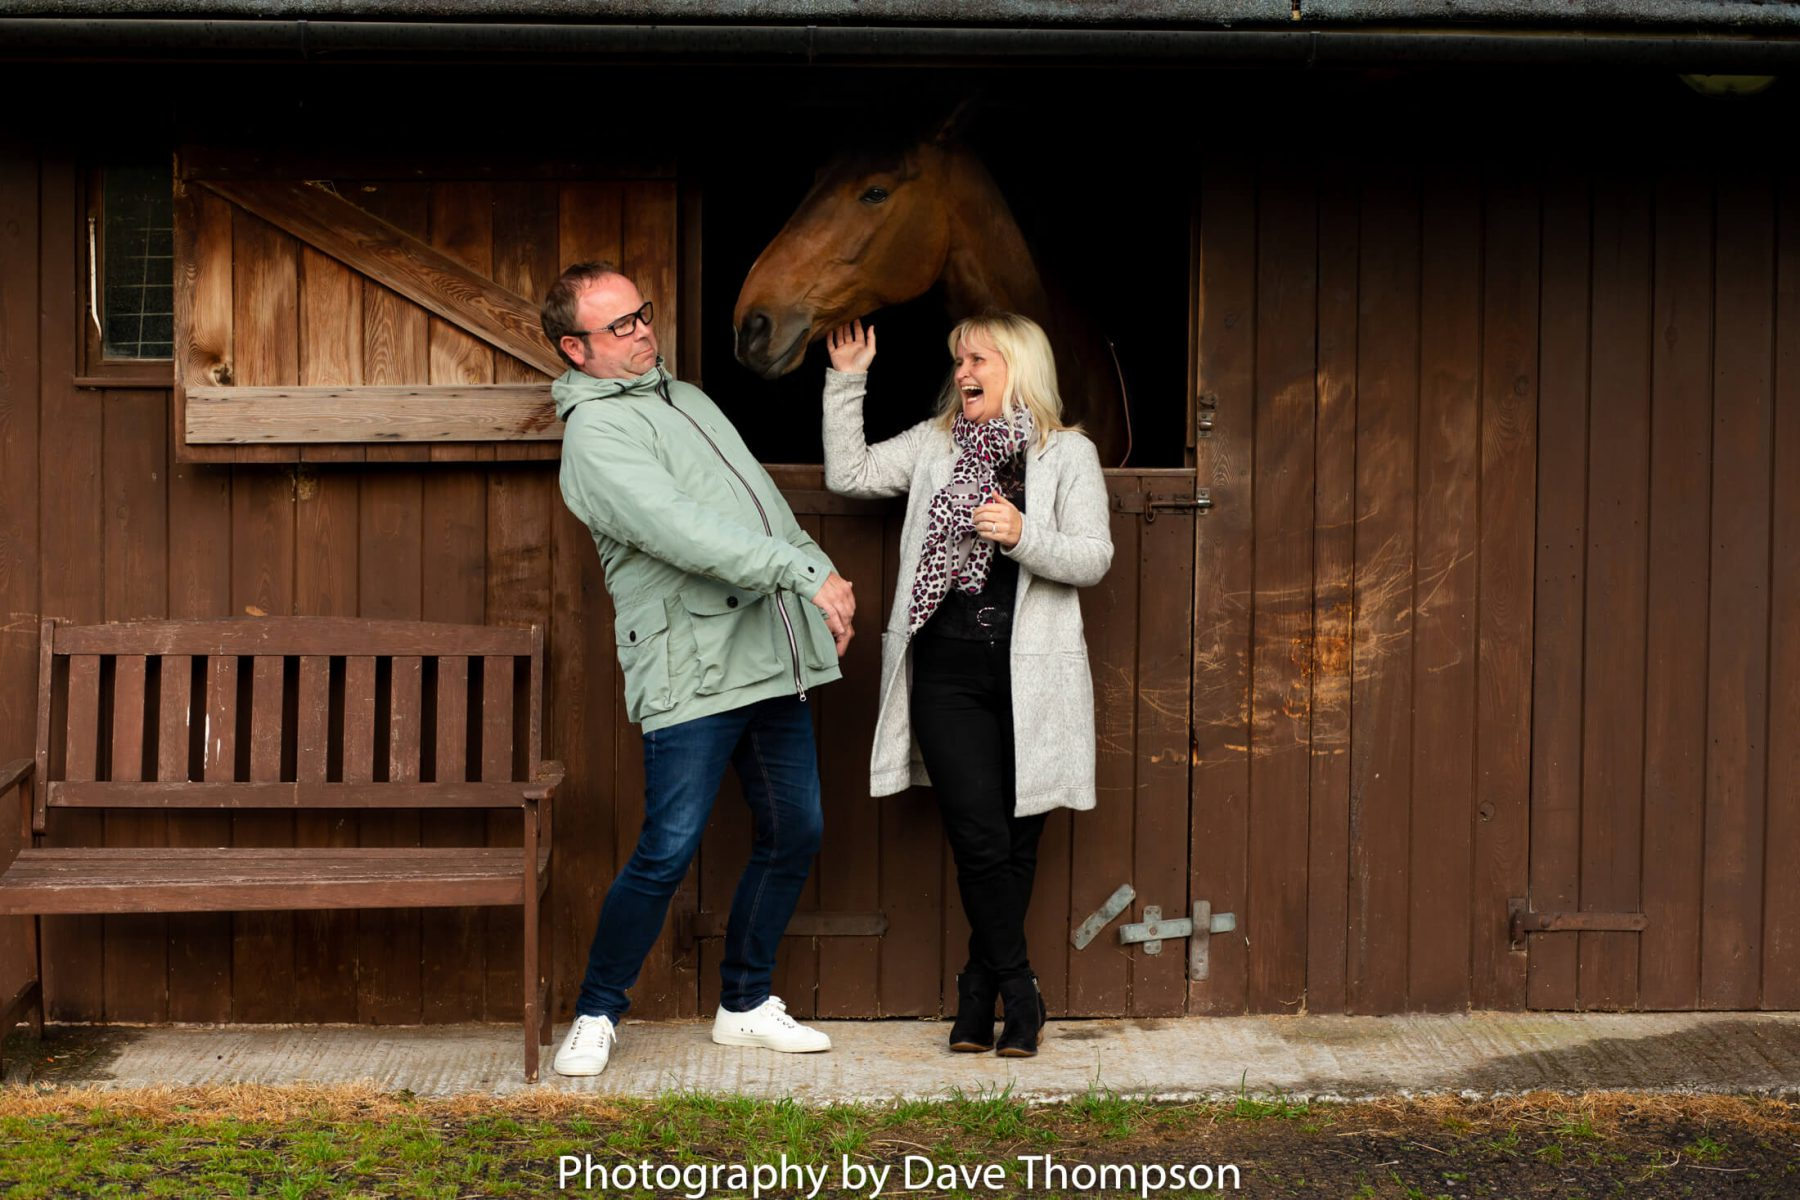 Laughter with a horse during a photoshoot in Cheshire